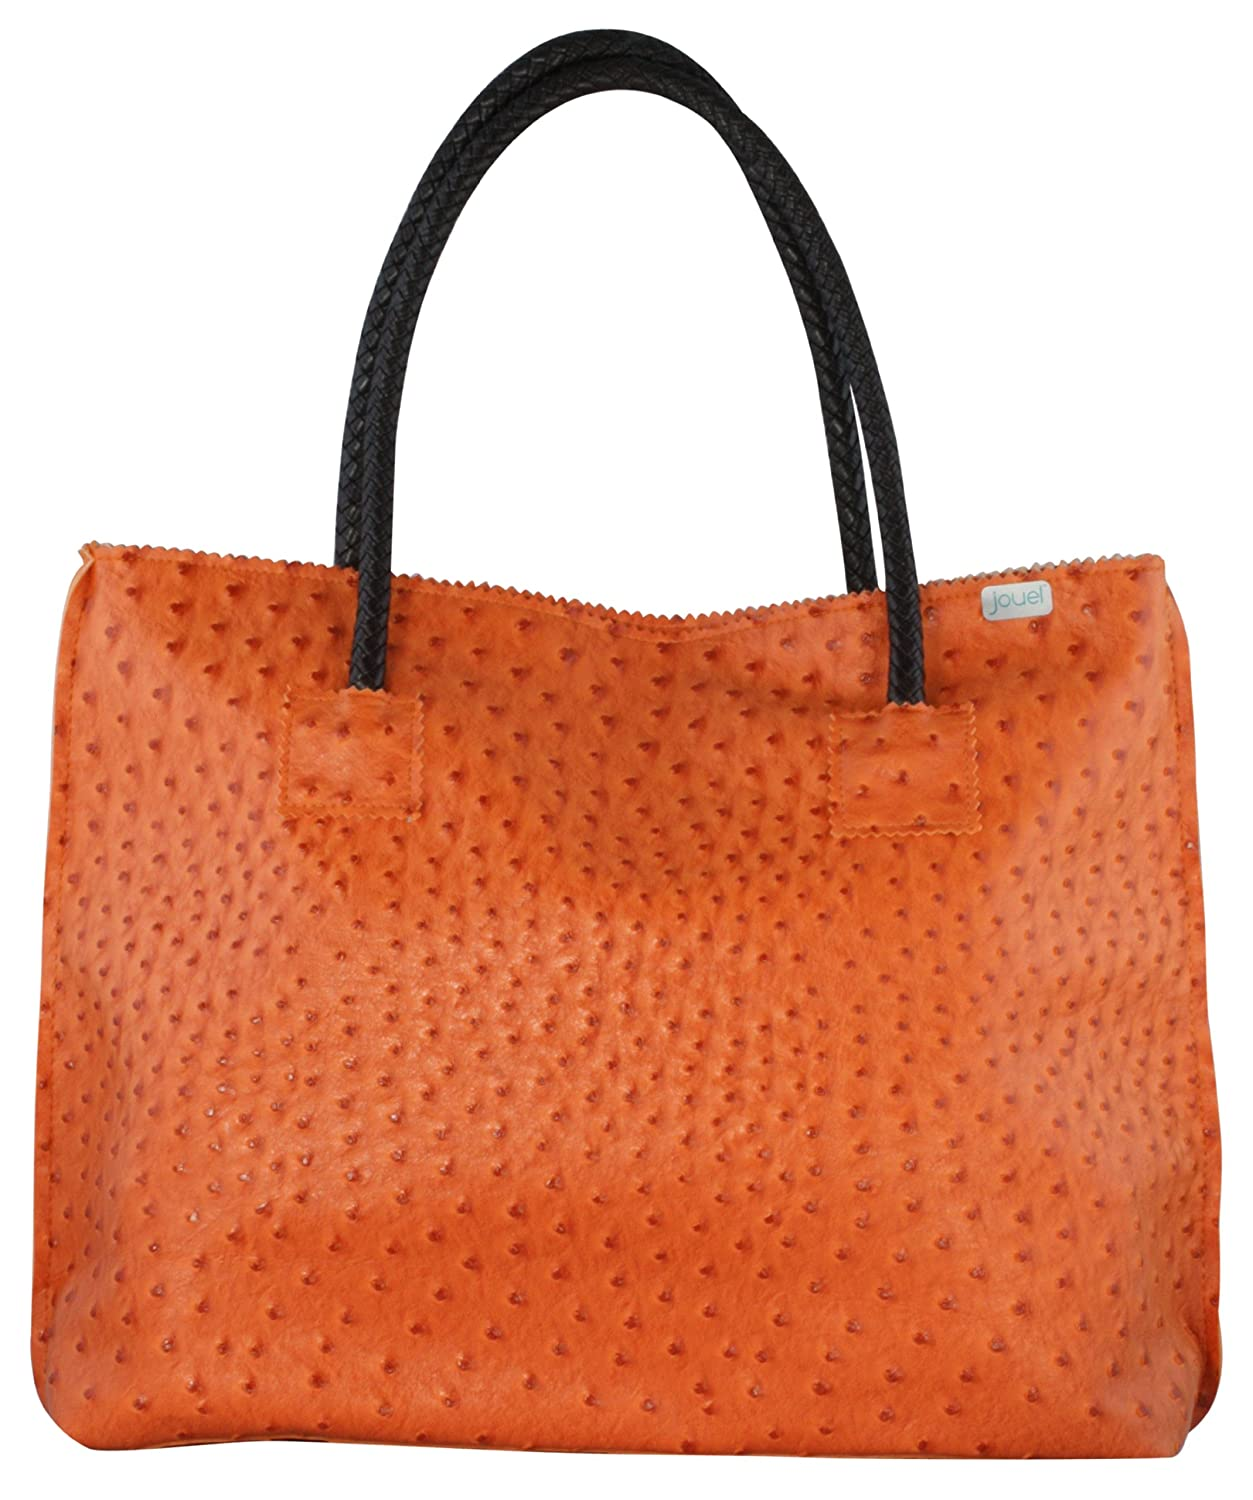 8d1cd8a024ed Designer Inspired Faux Orange Ostrich Leather Rosette Tote Bag  Handbags   Amazon.com